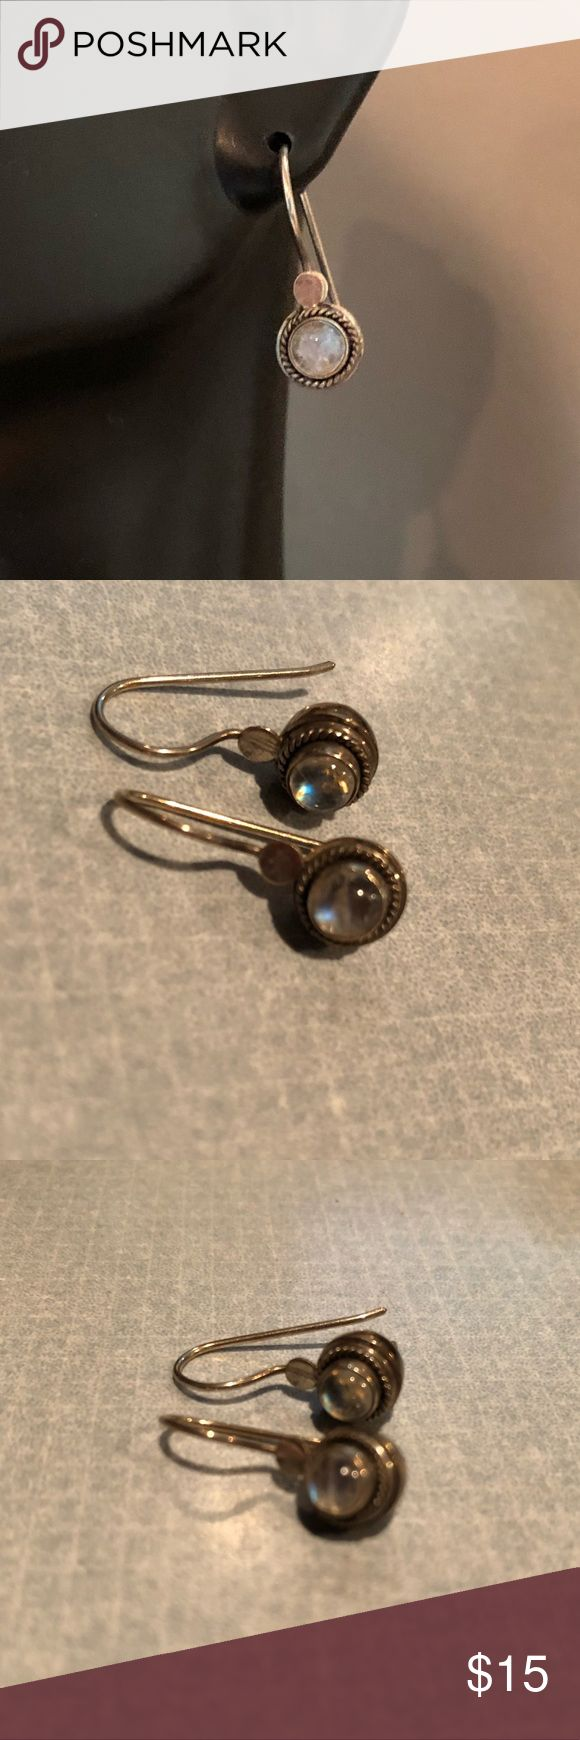 Moonstone Earrings From my personal collection. Lovely moonstones set in Silver with black rope accent. Wires hook on back. Jewelry Earrings